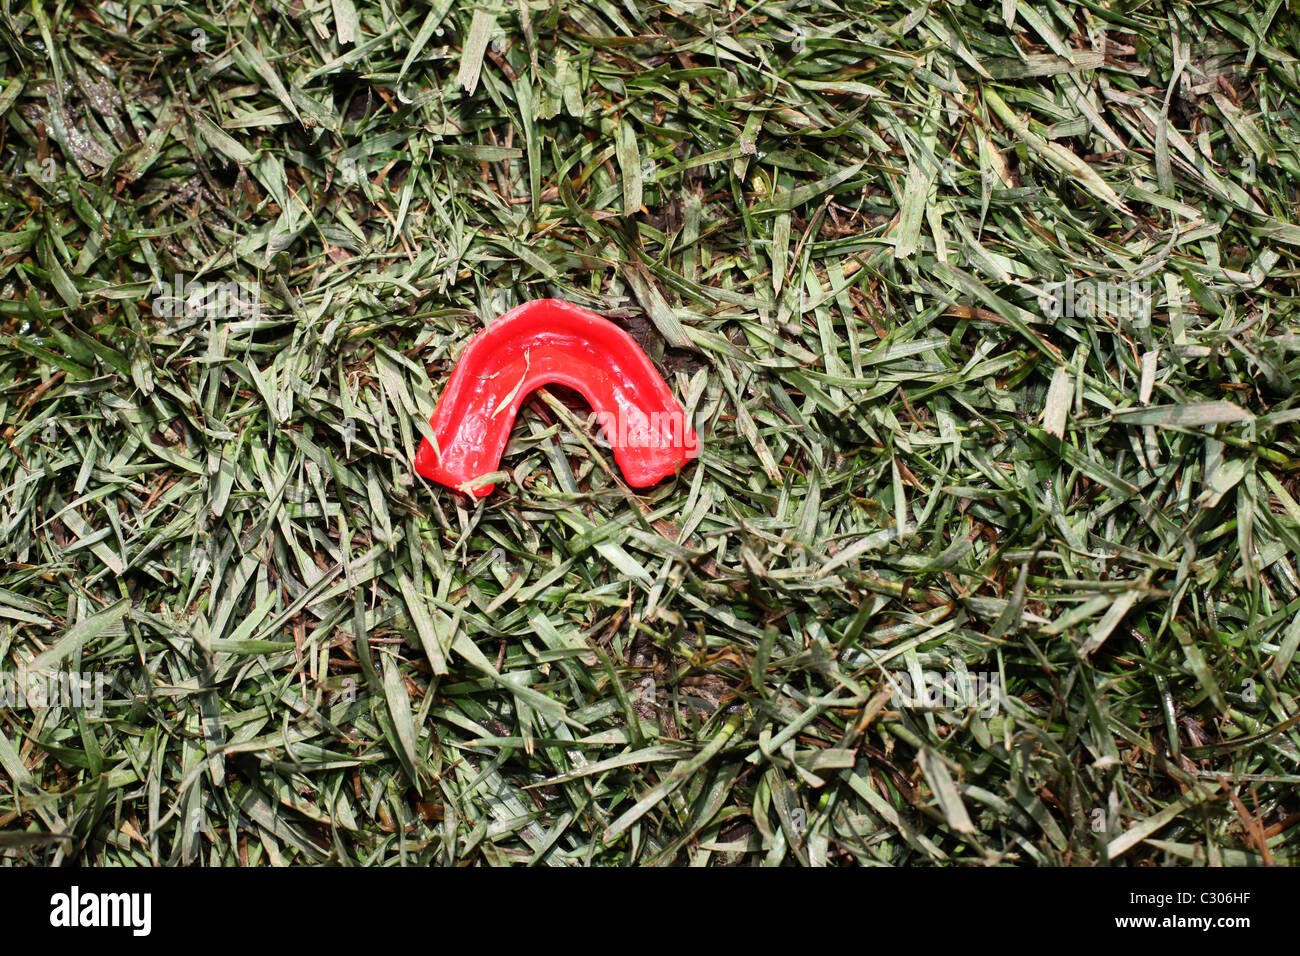 Rugby mouthguard on lawn. - Stock Image